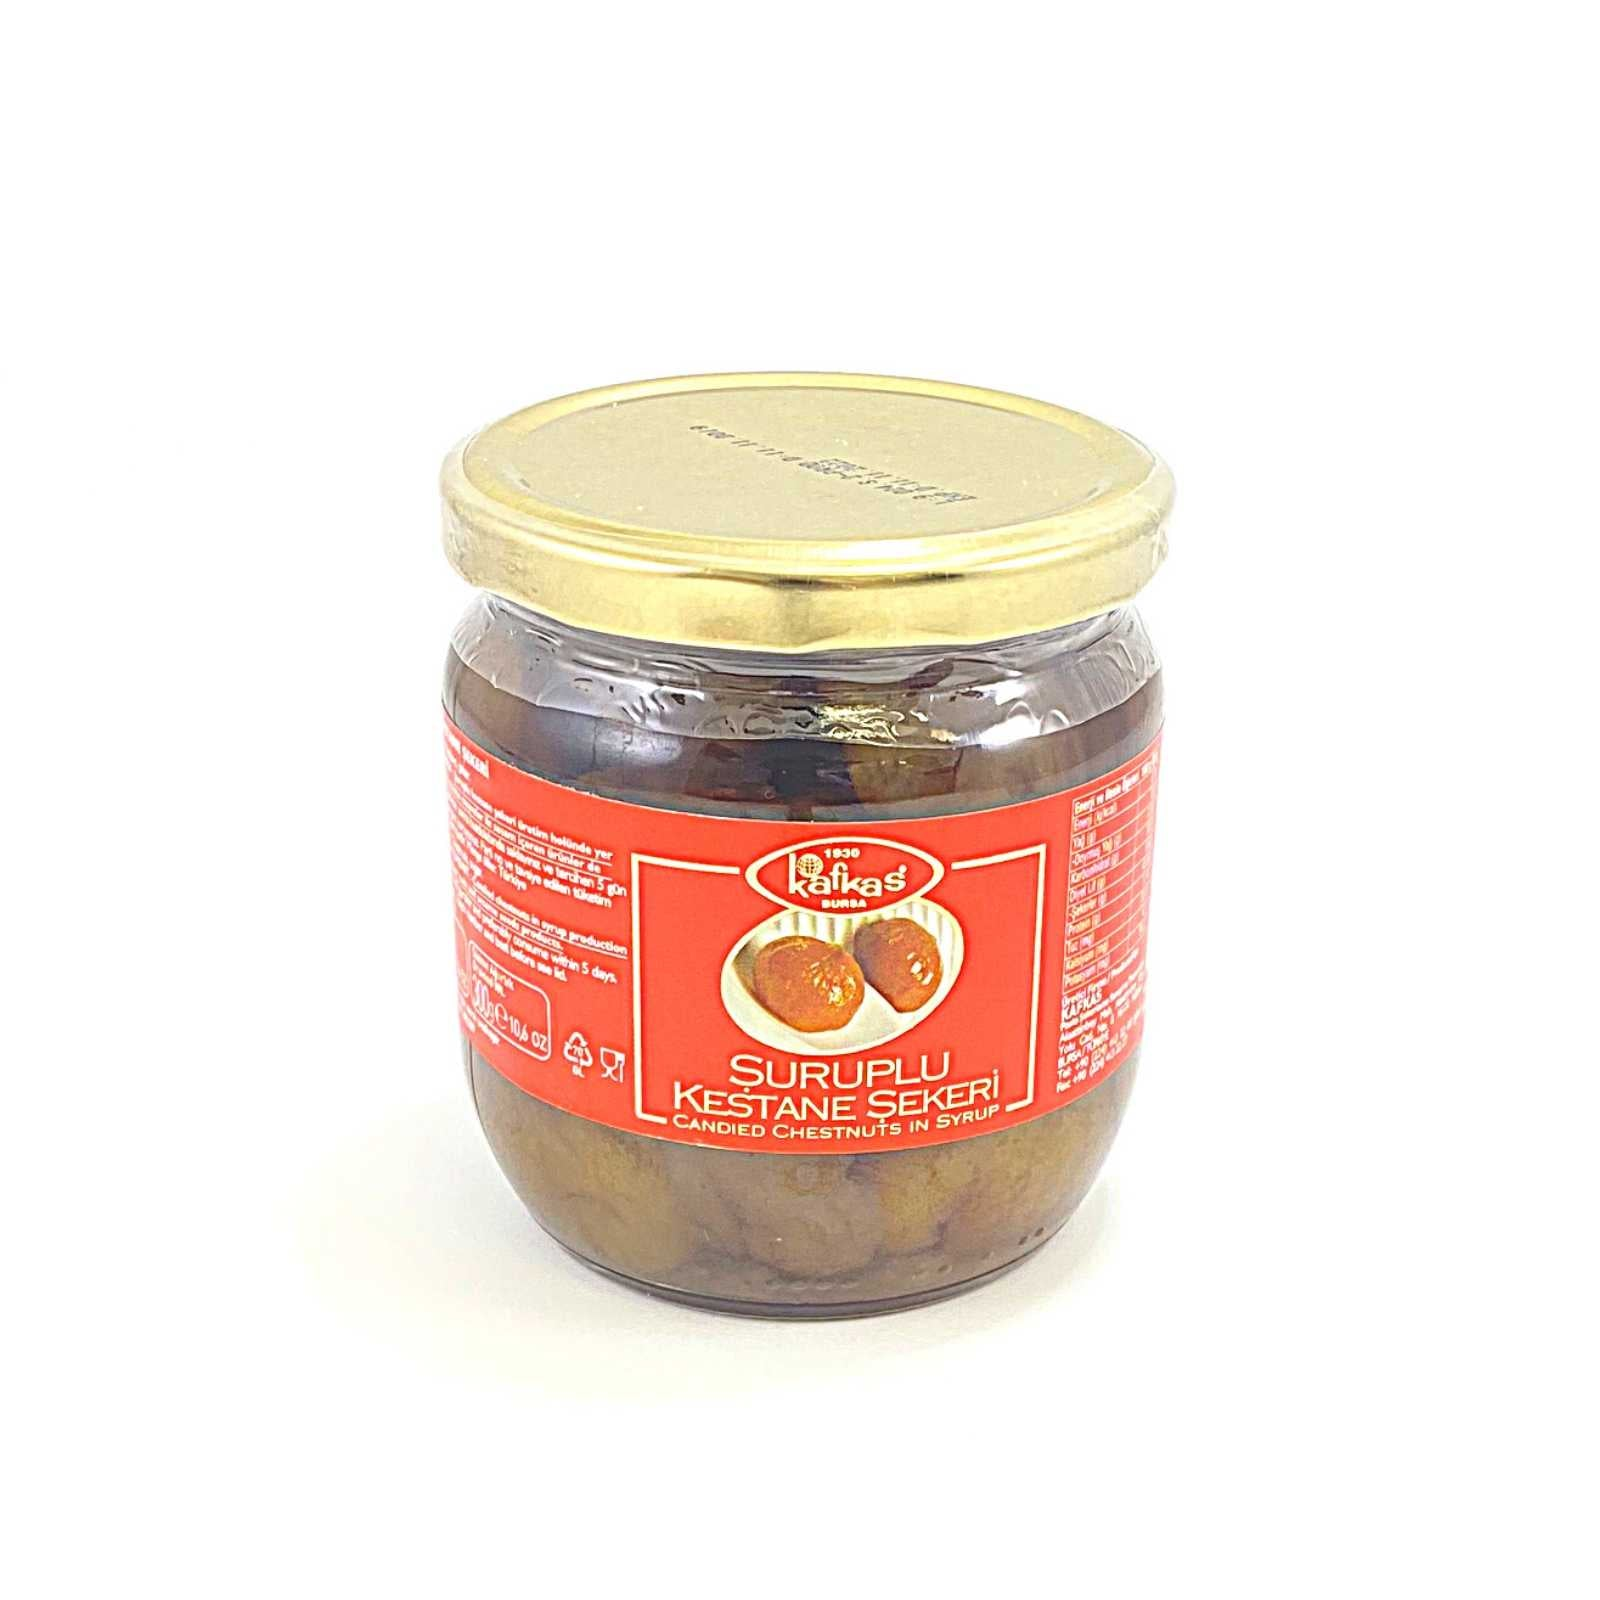 Candied Chestnut in Syrup 500 Gr